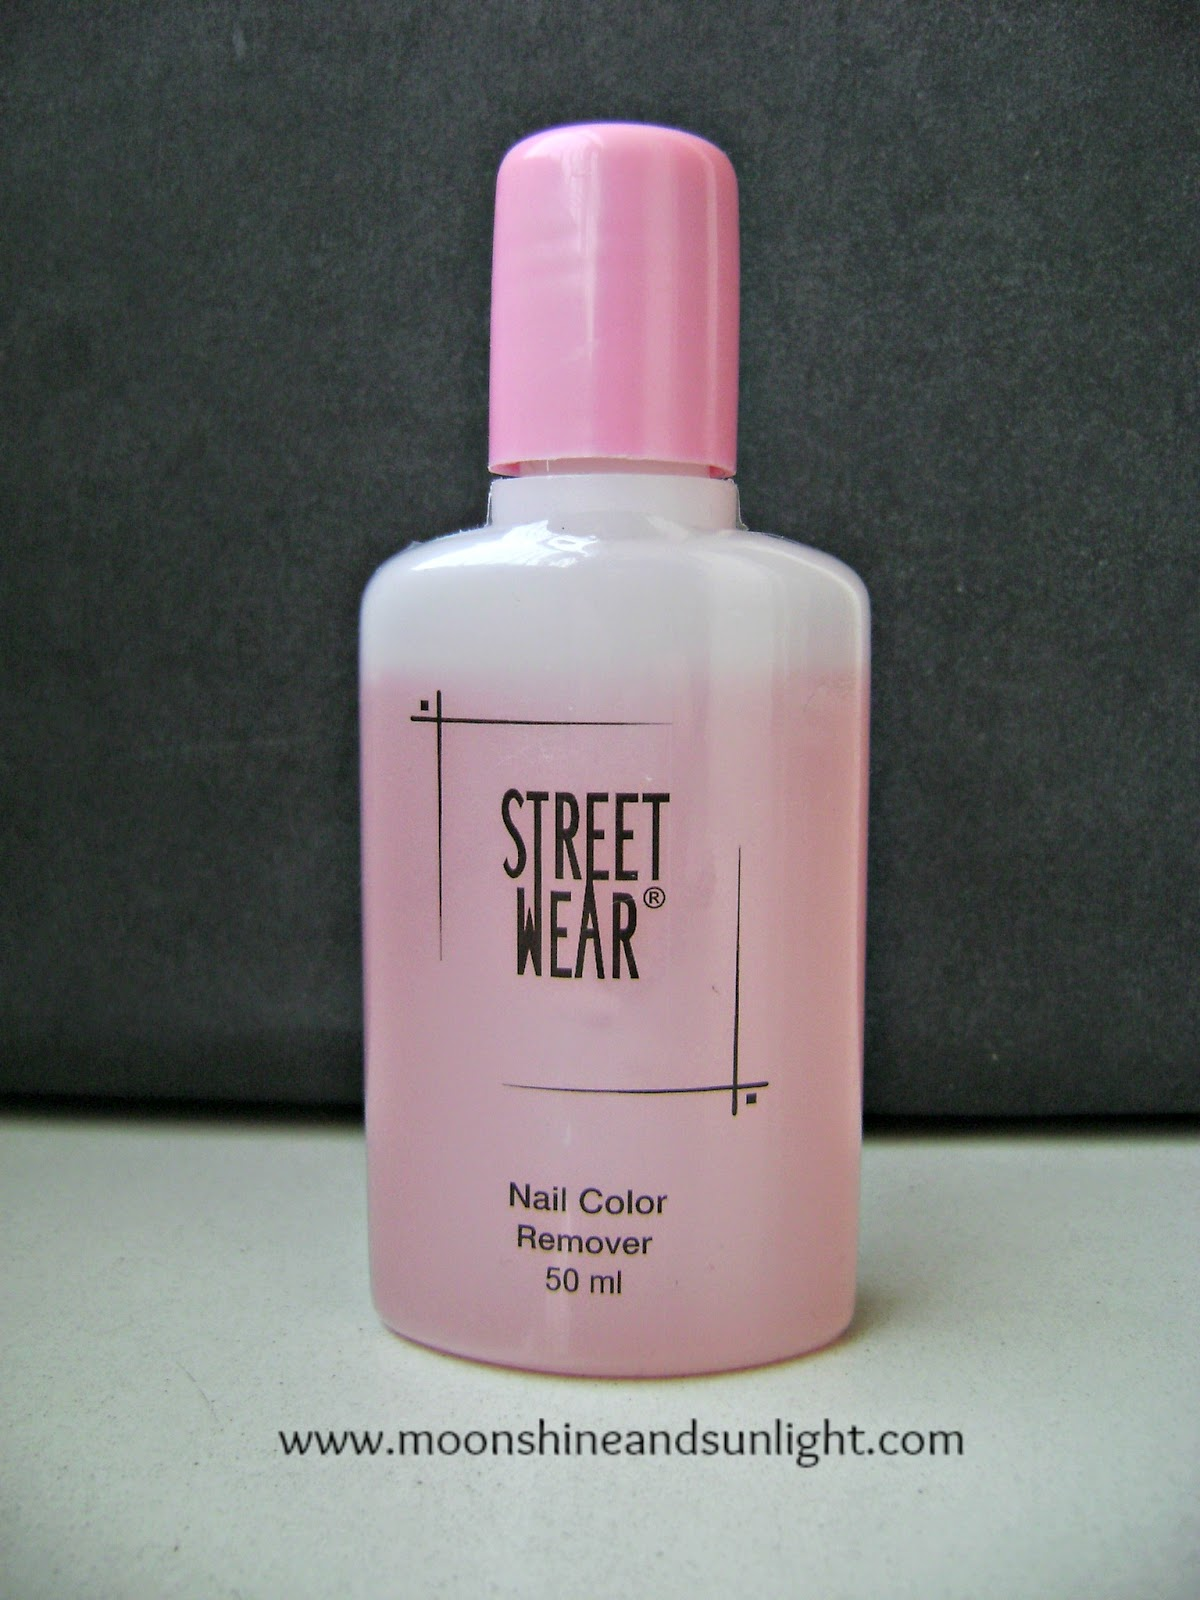 Revlon Street Wear Nail color remover review and price in India